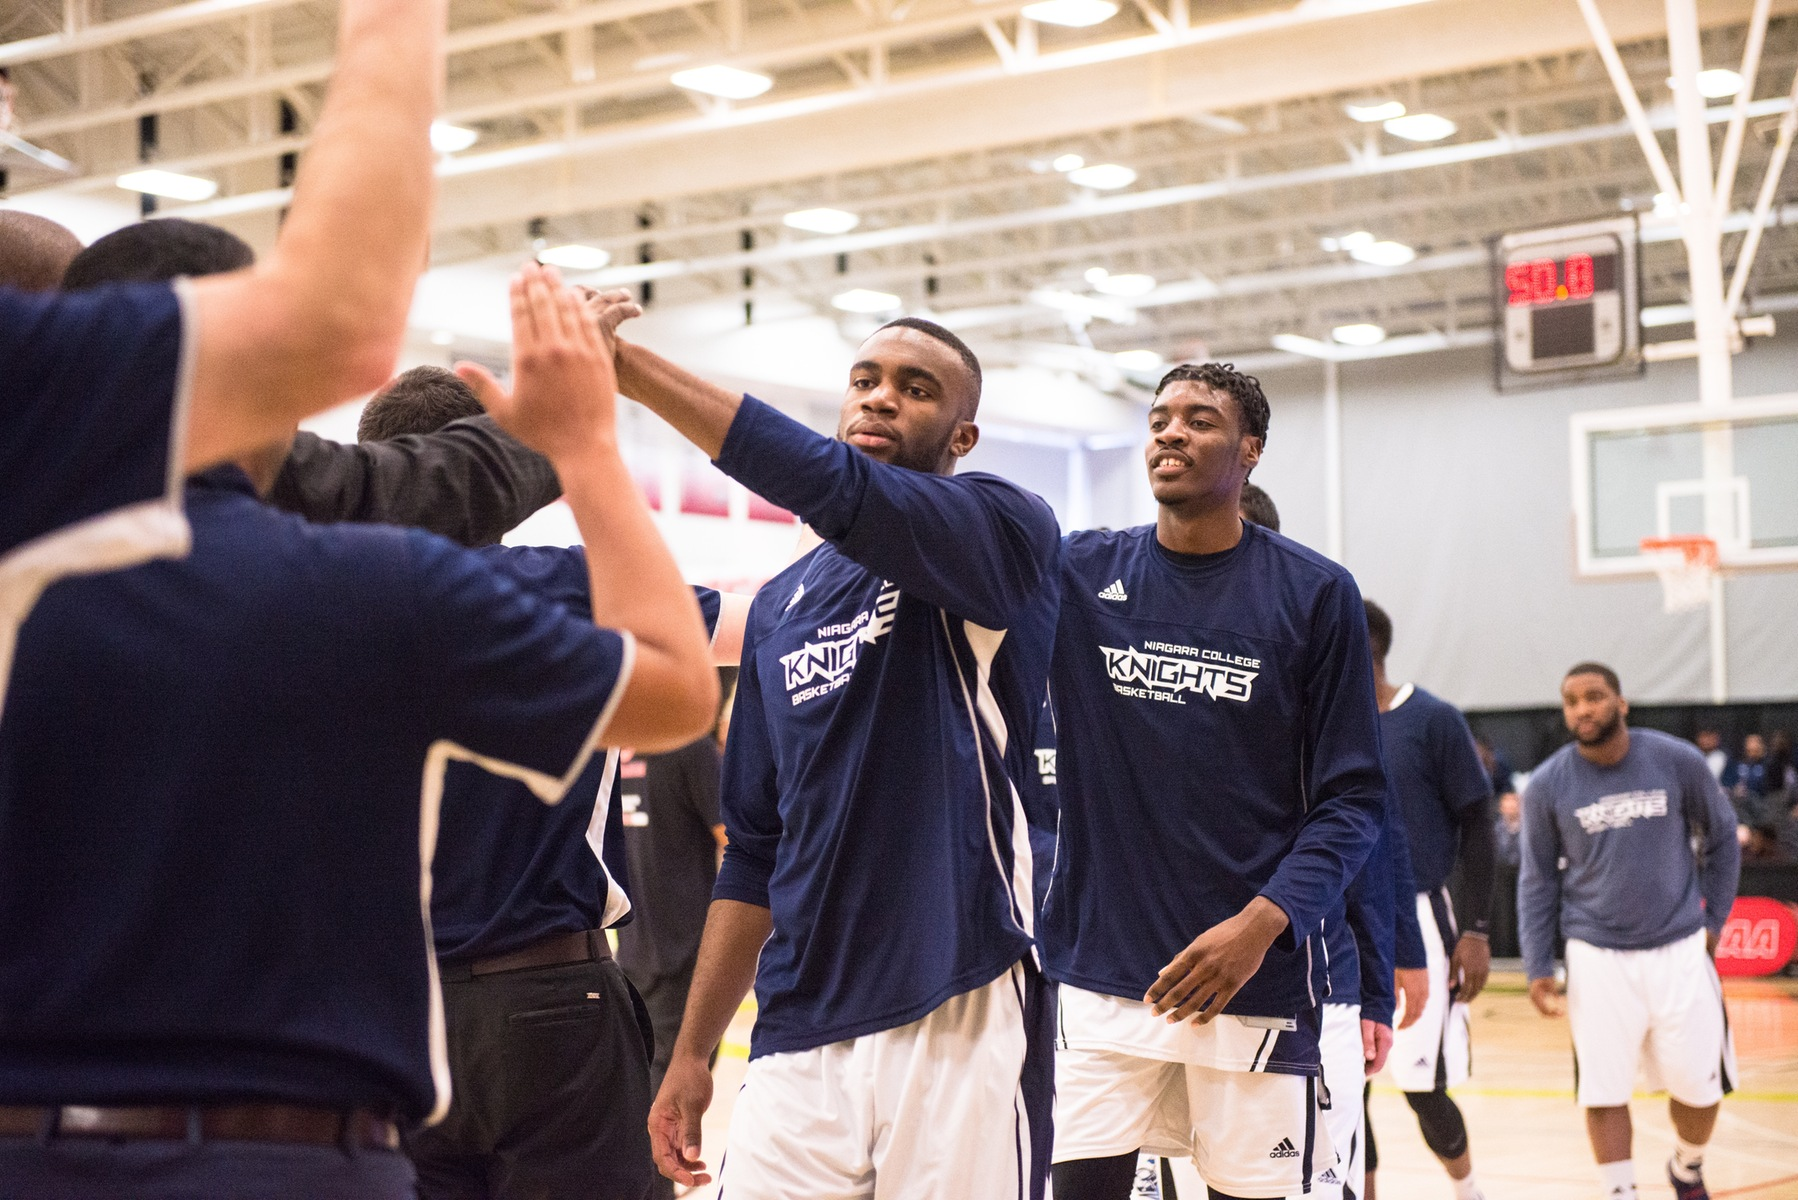 PREVIEW: Knights men's basketball set to face Huskies in OCAA Semi-Finals